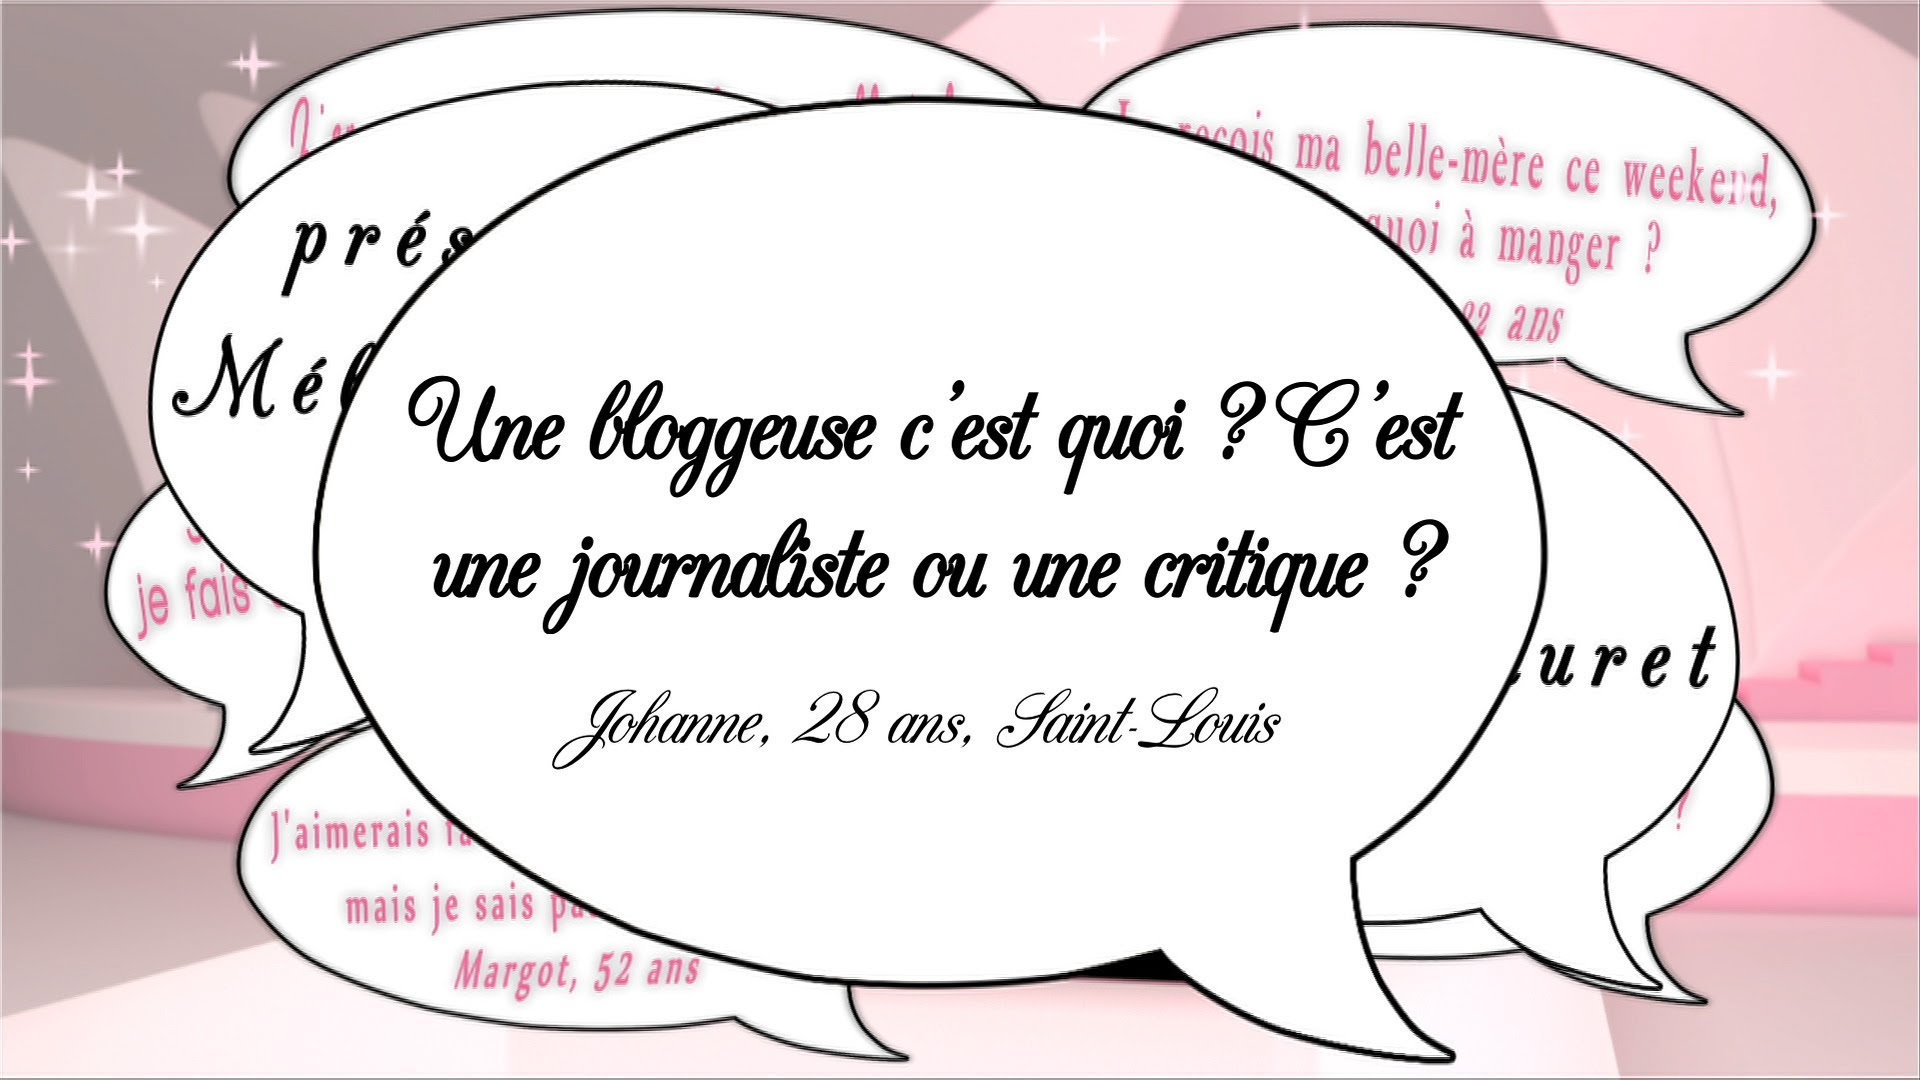 Une bloggeuse, journaliste ou critique ?